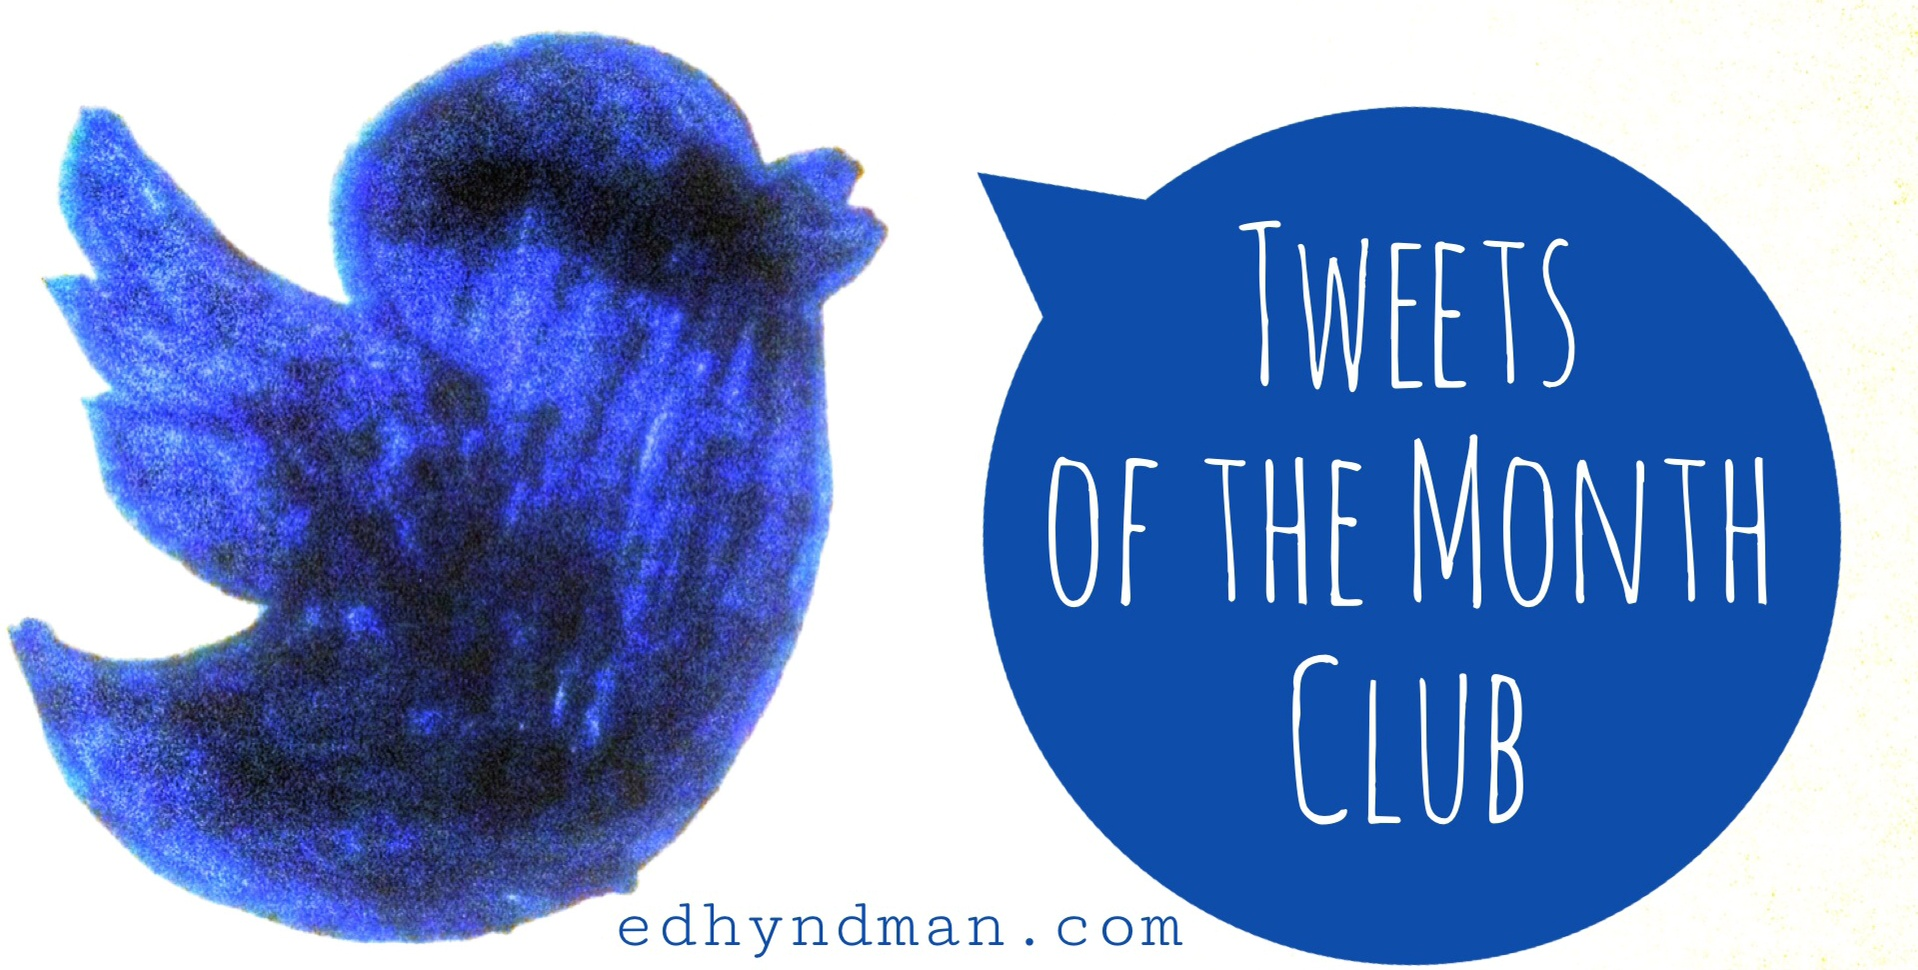 Tweets of the Month Club | April 2020